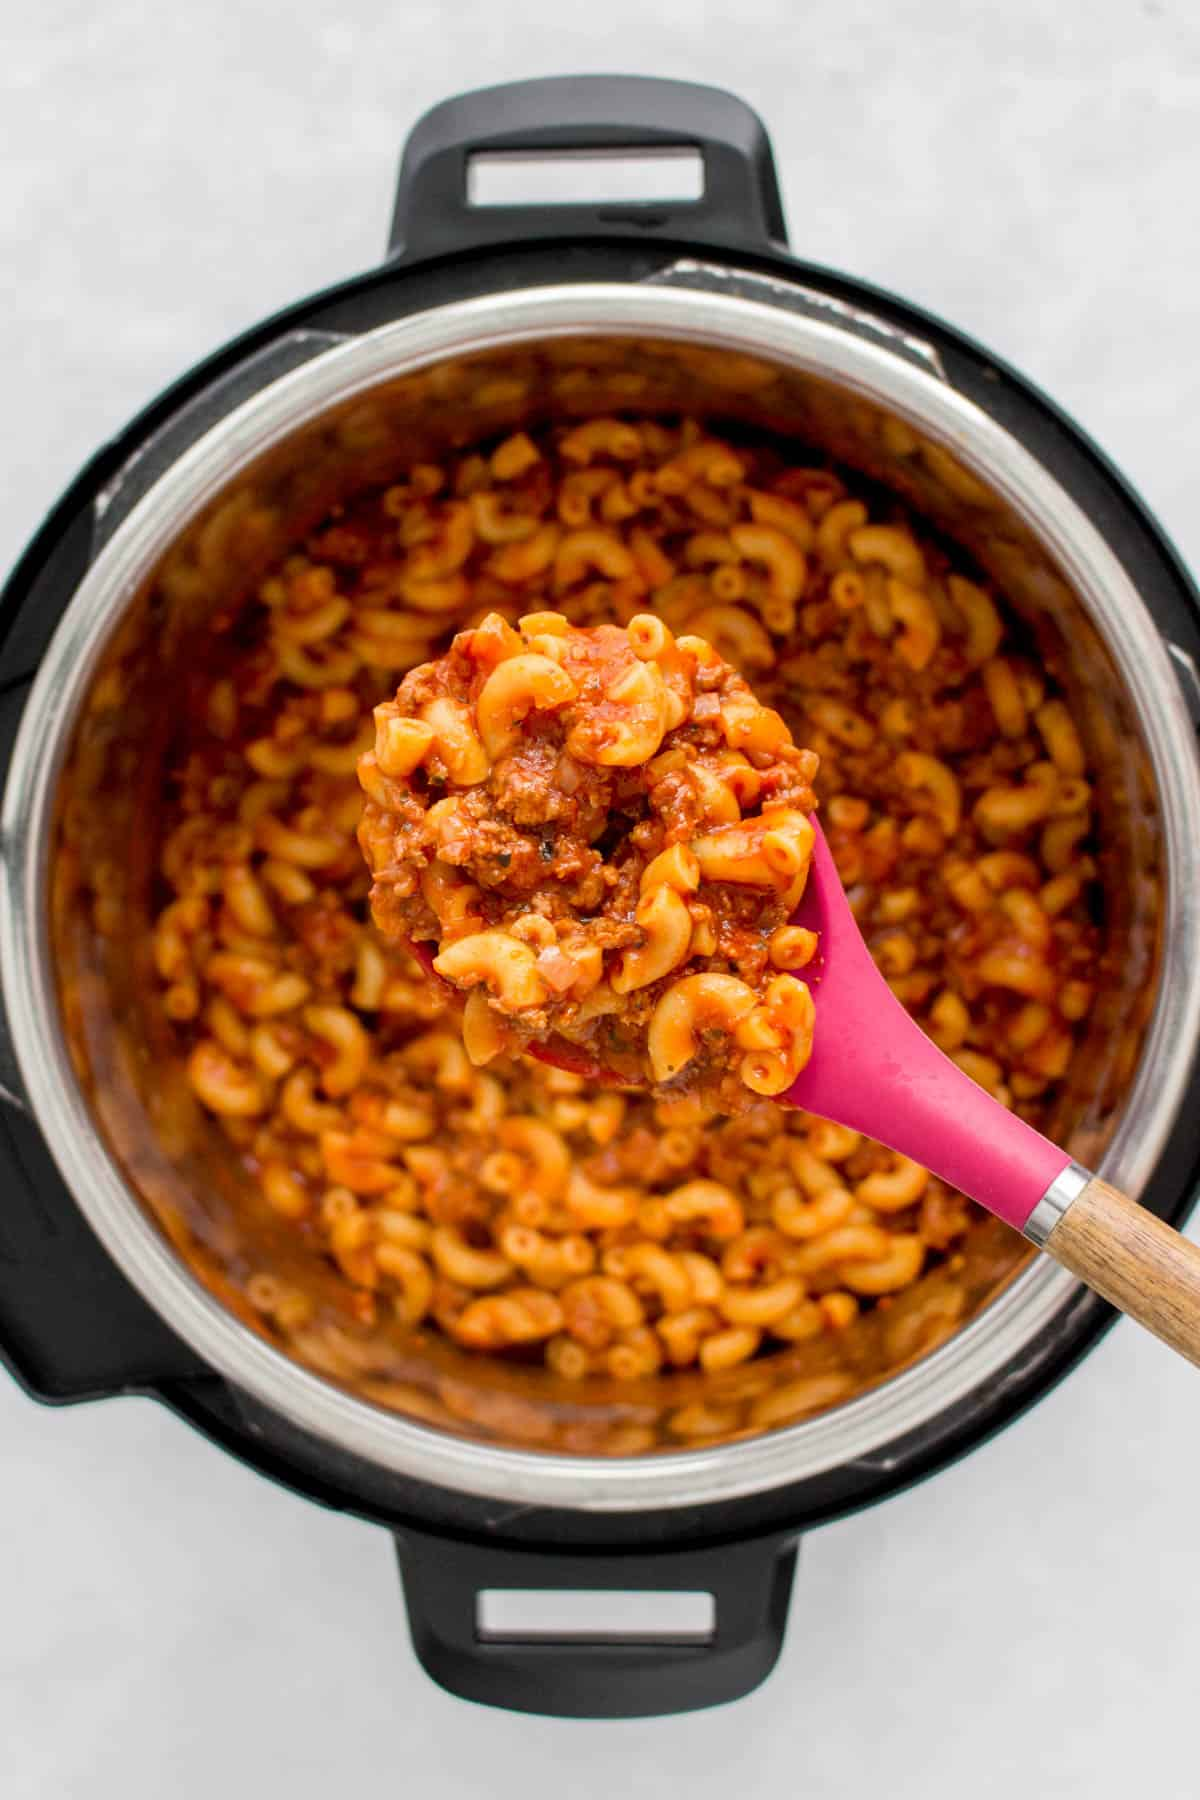 A spoonful of goulash over top of an Instant Pot.